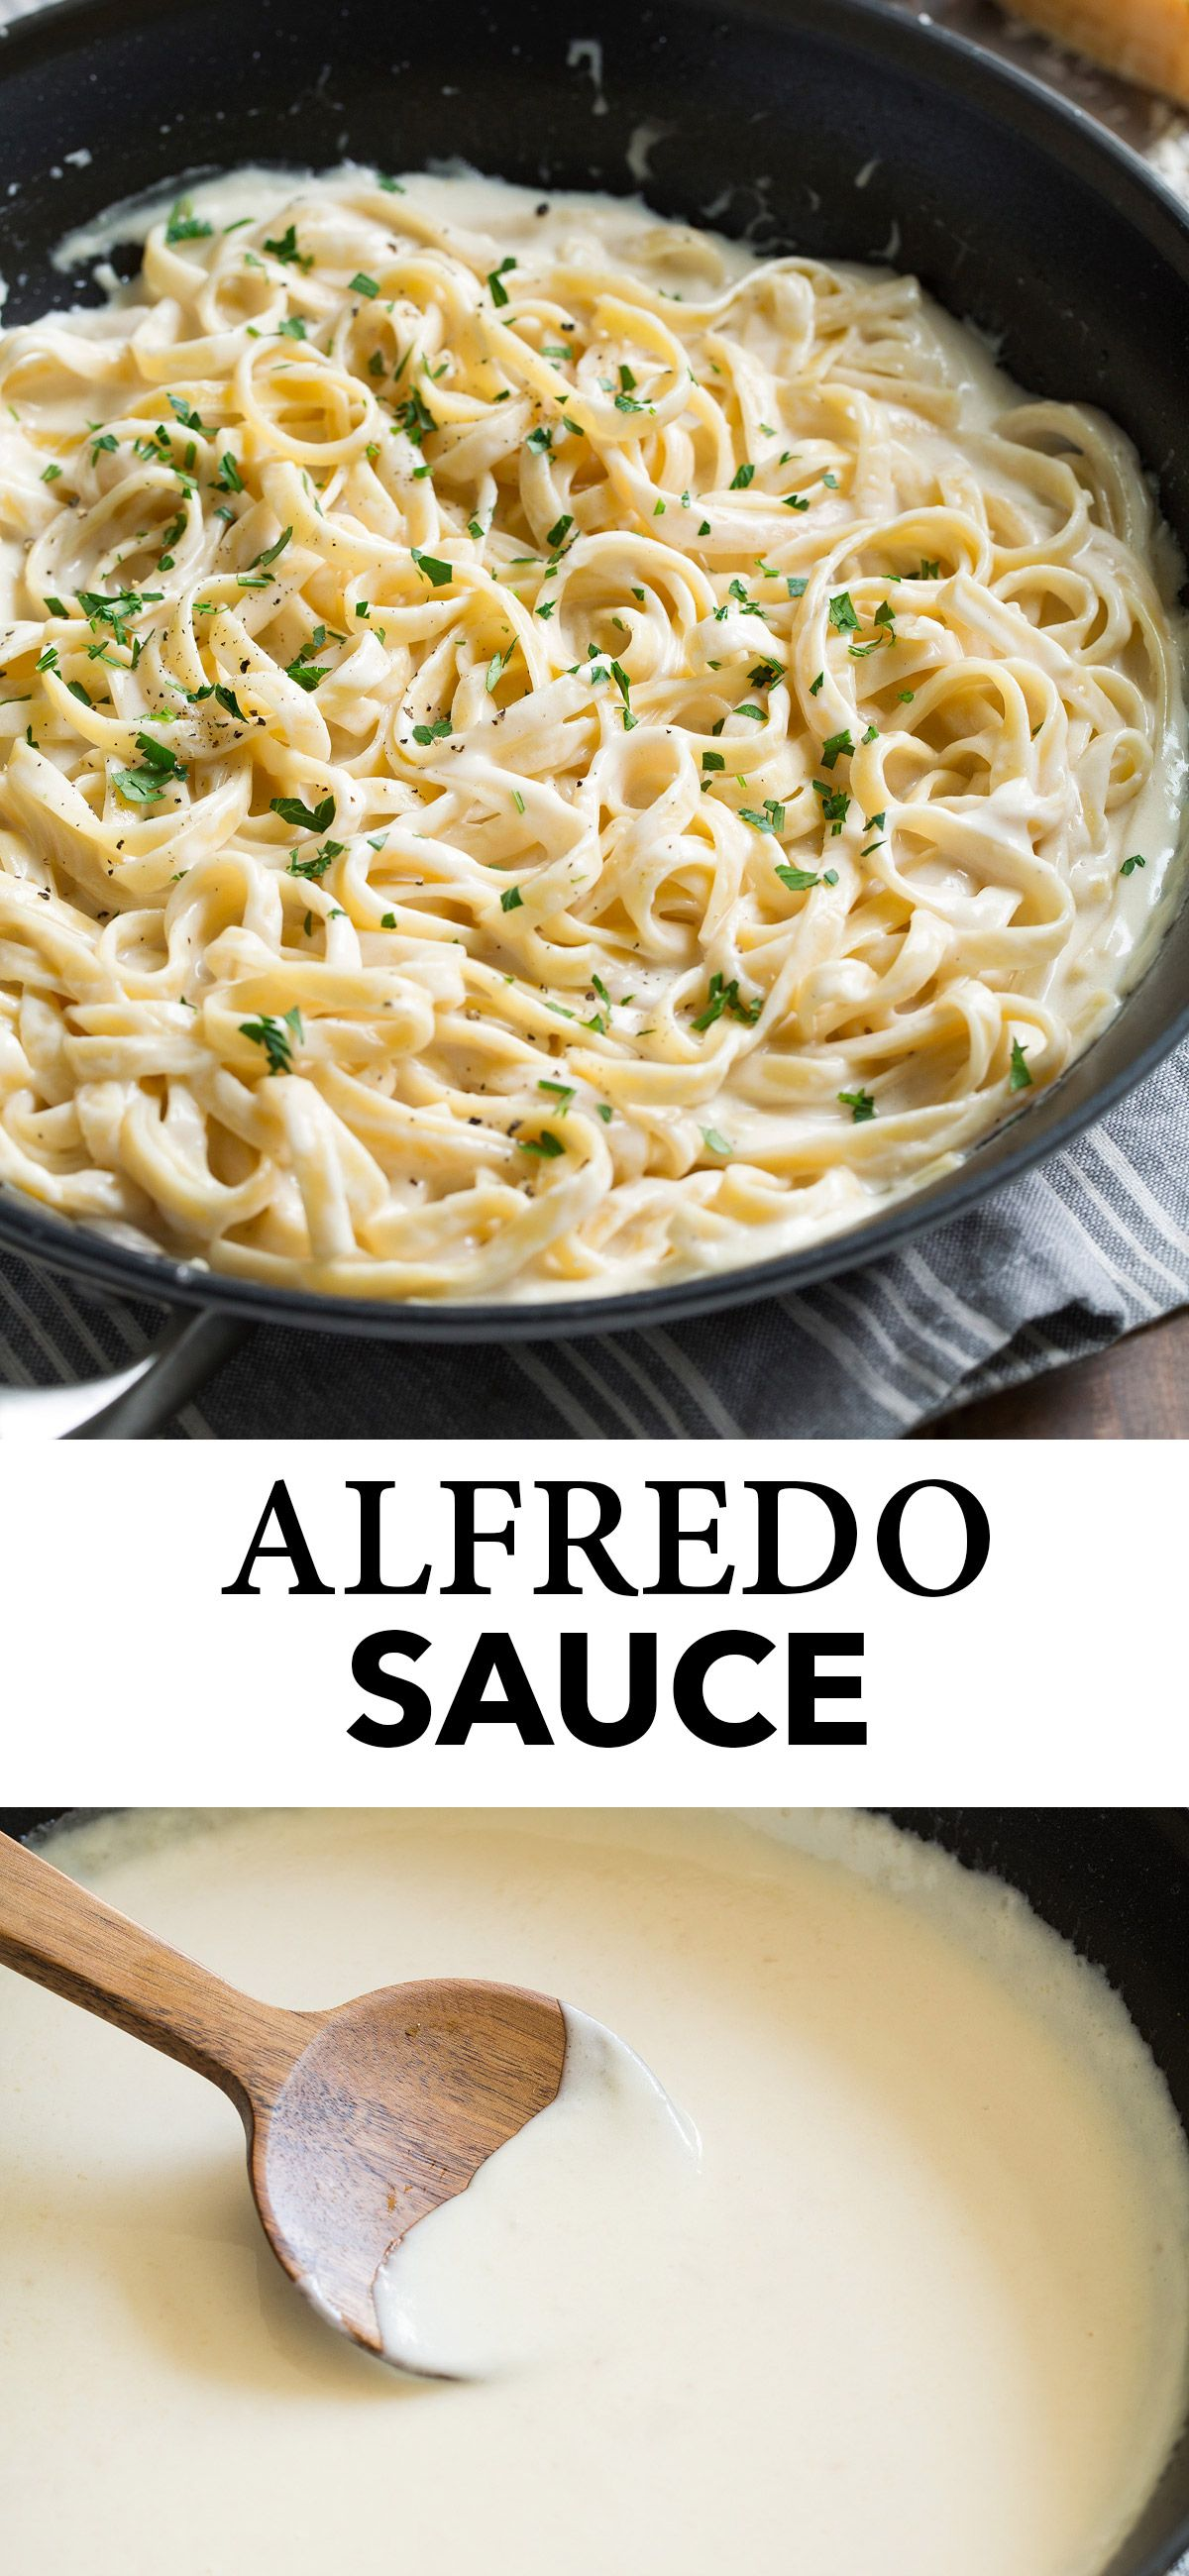 Best Alfredo Sauce Recipe Made With Basic Ingredients Like Rich Cream Butter And Milk Alfredo Sauce Recipe Best Alfredo Sauce Recipe Chicken Alfredo Recipes